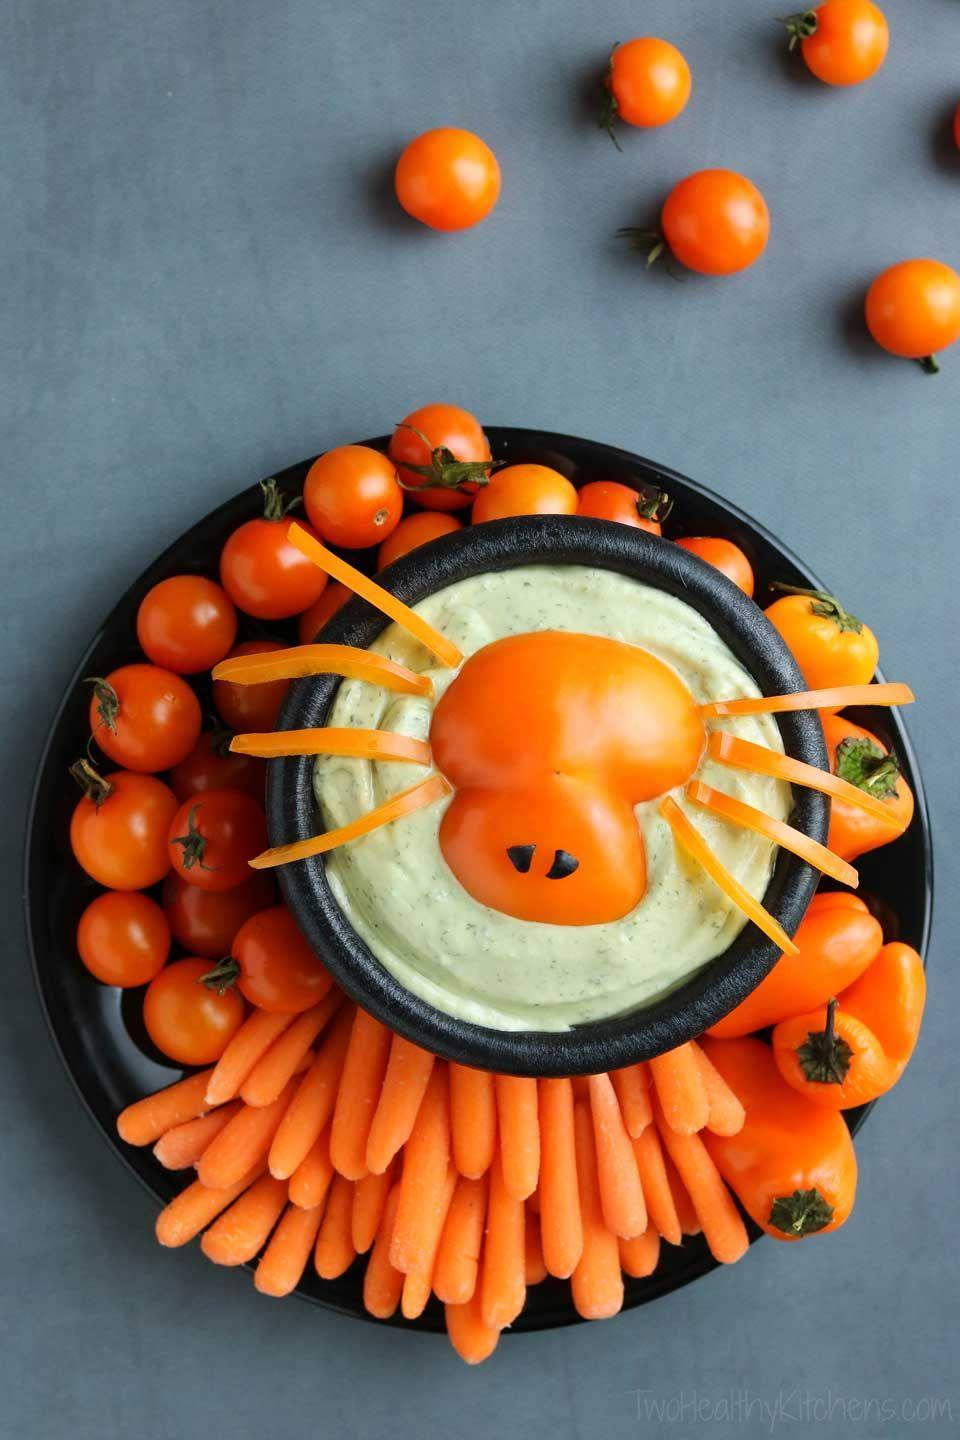 """<p>On the hunt for some delicious finger foods? A cleverly cut bell pepper makes a dip topper fit for a crowd.</p><p><a class=""""link rapid-noclick-resp"""" href=""""https://twohealthykitchens.com/halloween-appetizer-dip-spooky-spider/"""" rel=""""nofollow noopener"""" target=""""_blank"""" data-ylk=""""slk:GET THE RECIPE"""">GET THE RECIPE</a> </p>"""